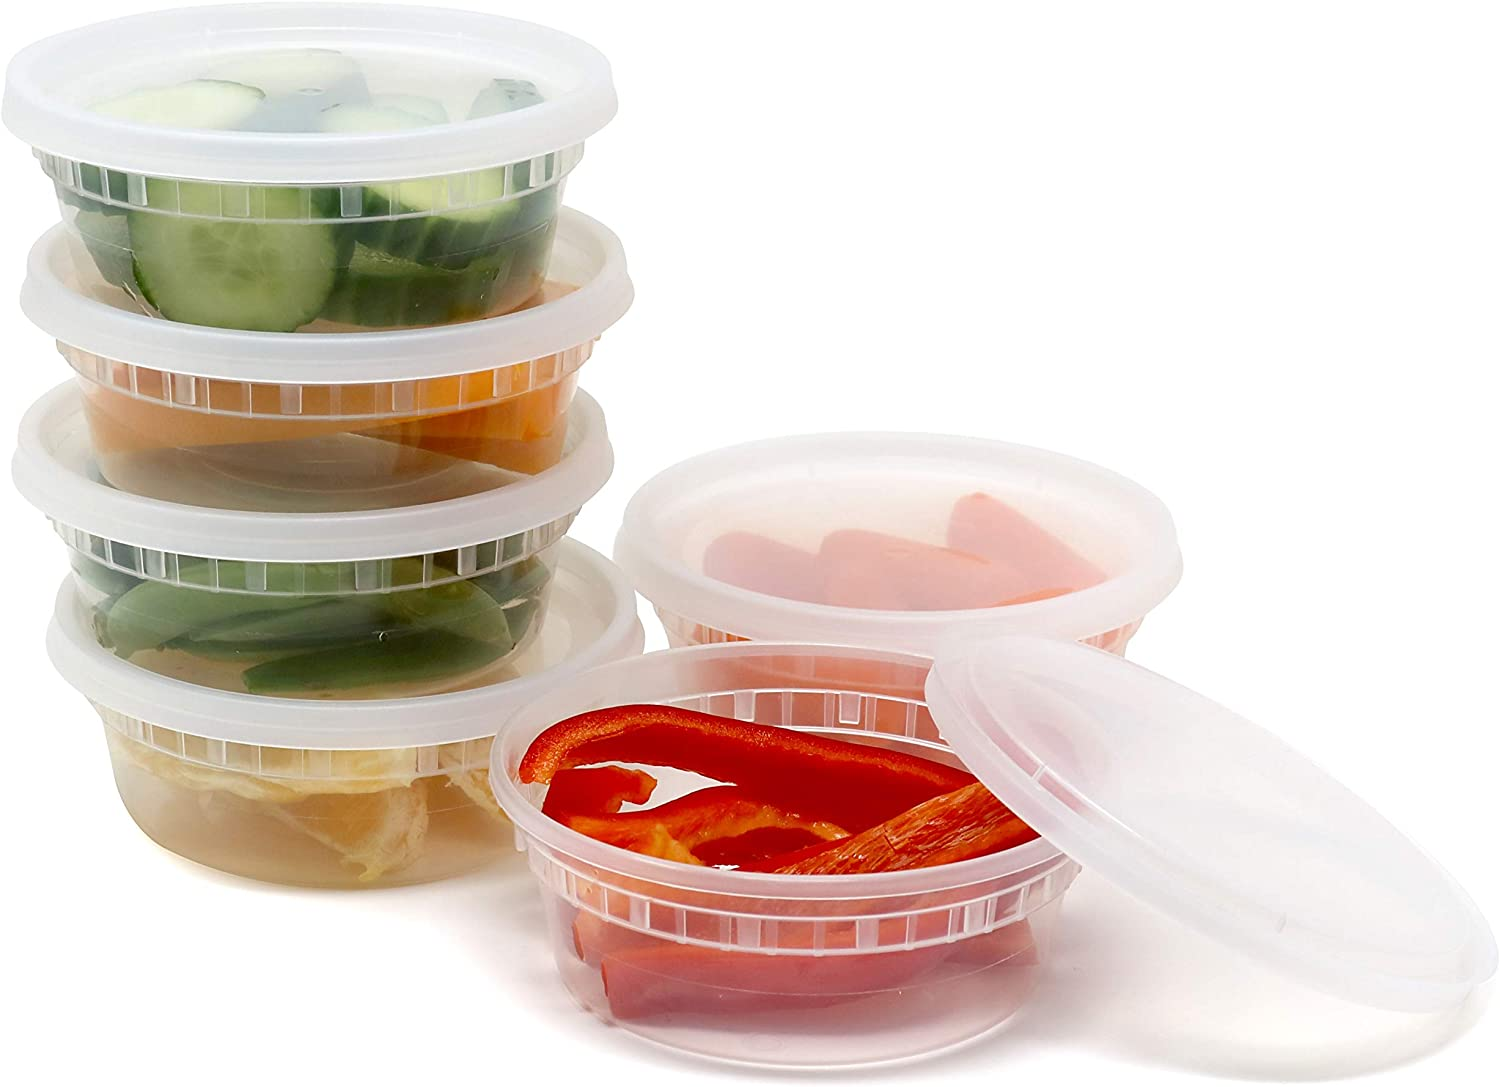 Plastic Food Storage Containers with Airtight Lids 8 oz. - BPA Free, Restaurant Deli Cups, Foodsavers, Portion Control, and Meal Prep Containers, 48 Pack